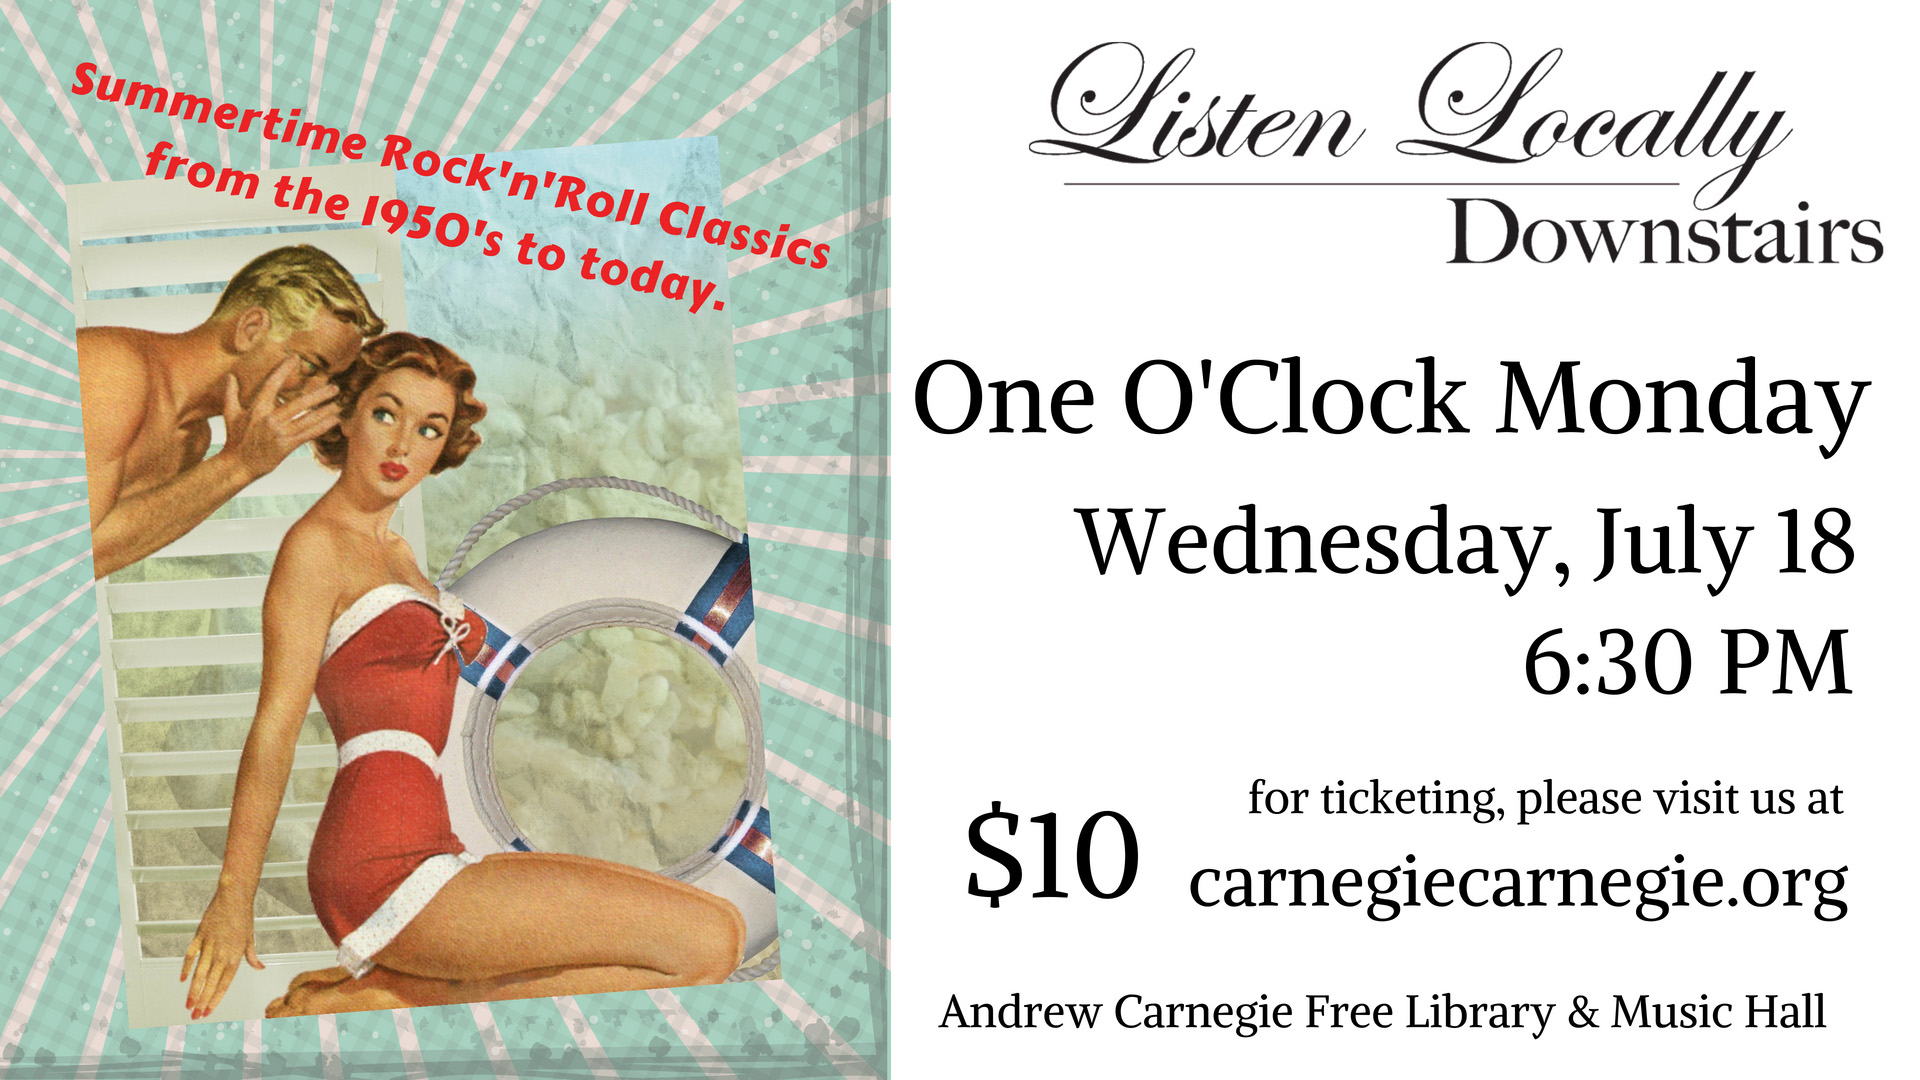 Listen Locally Downstairs with One O'Clock Monday